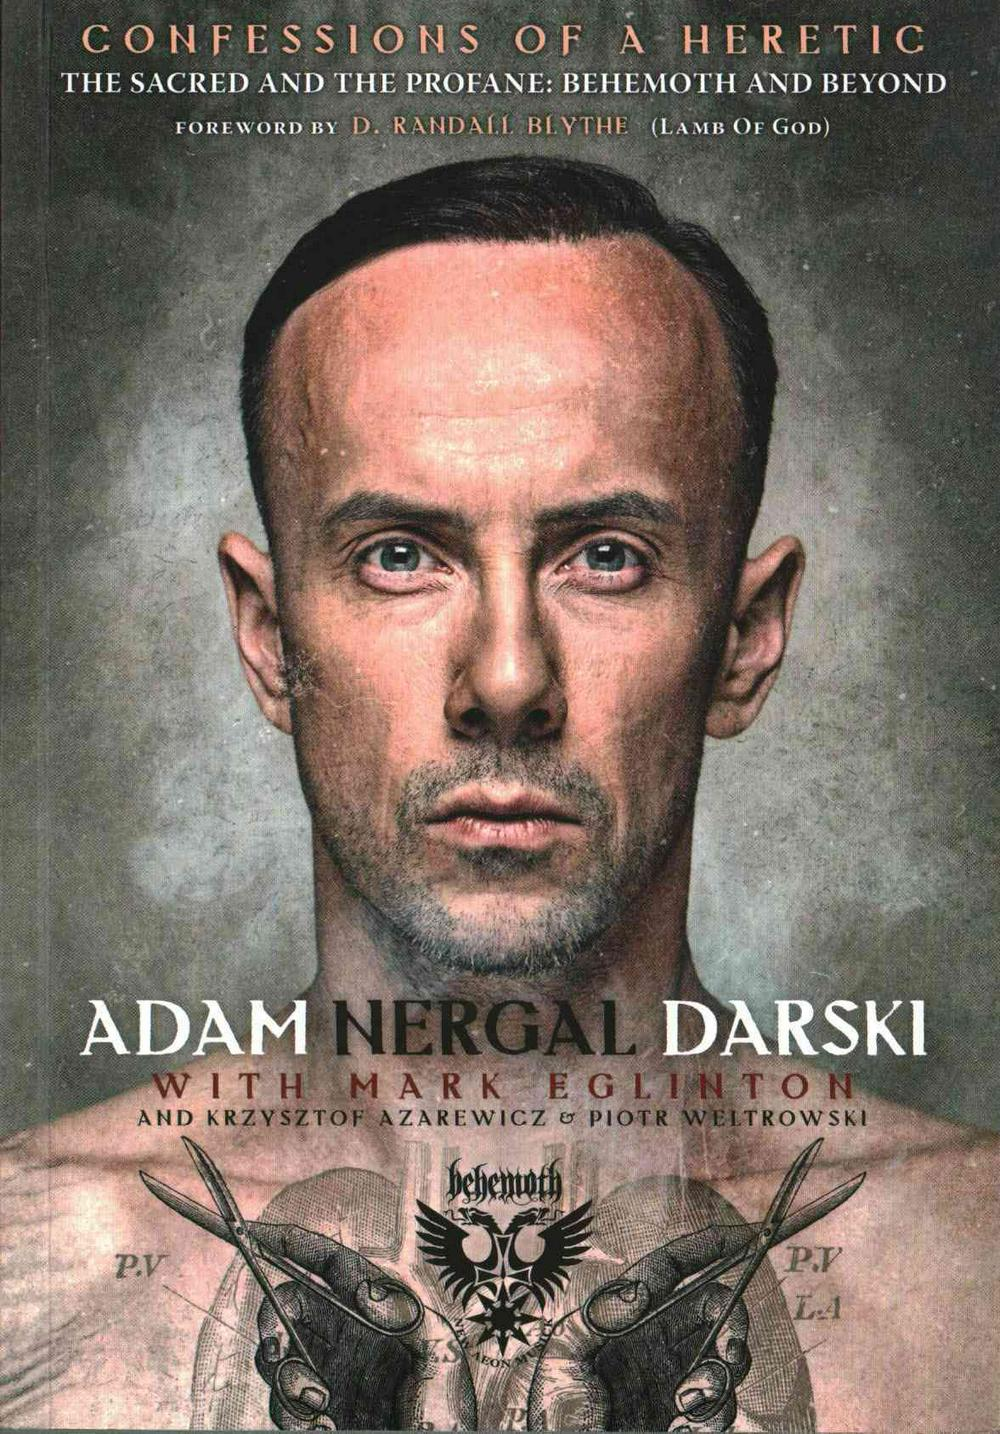 Confessions of a Heretic: The Sacred and the Profane: Behemoth and Beyond by Adam Nergal Darski, ISBN: 9781908279750